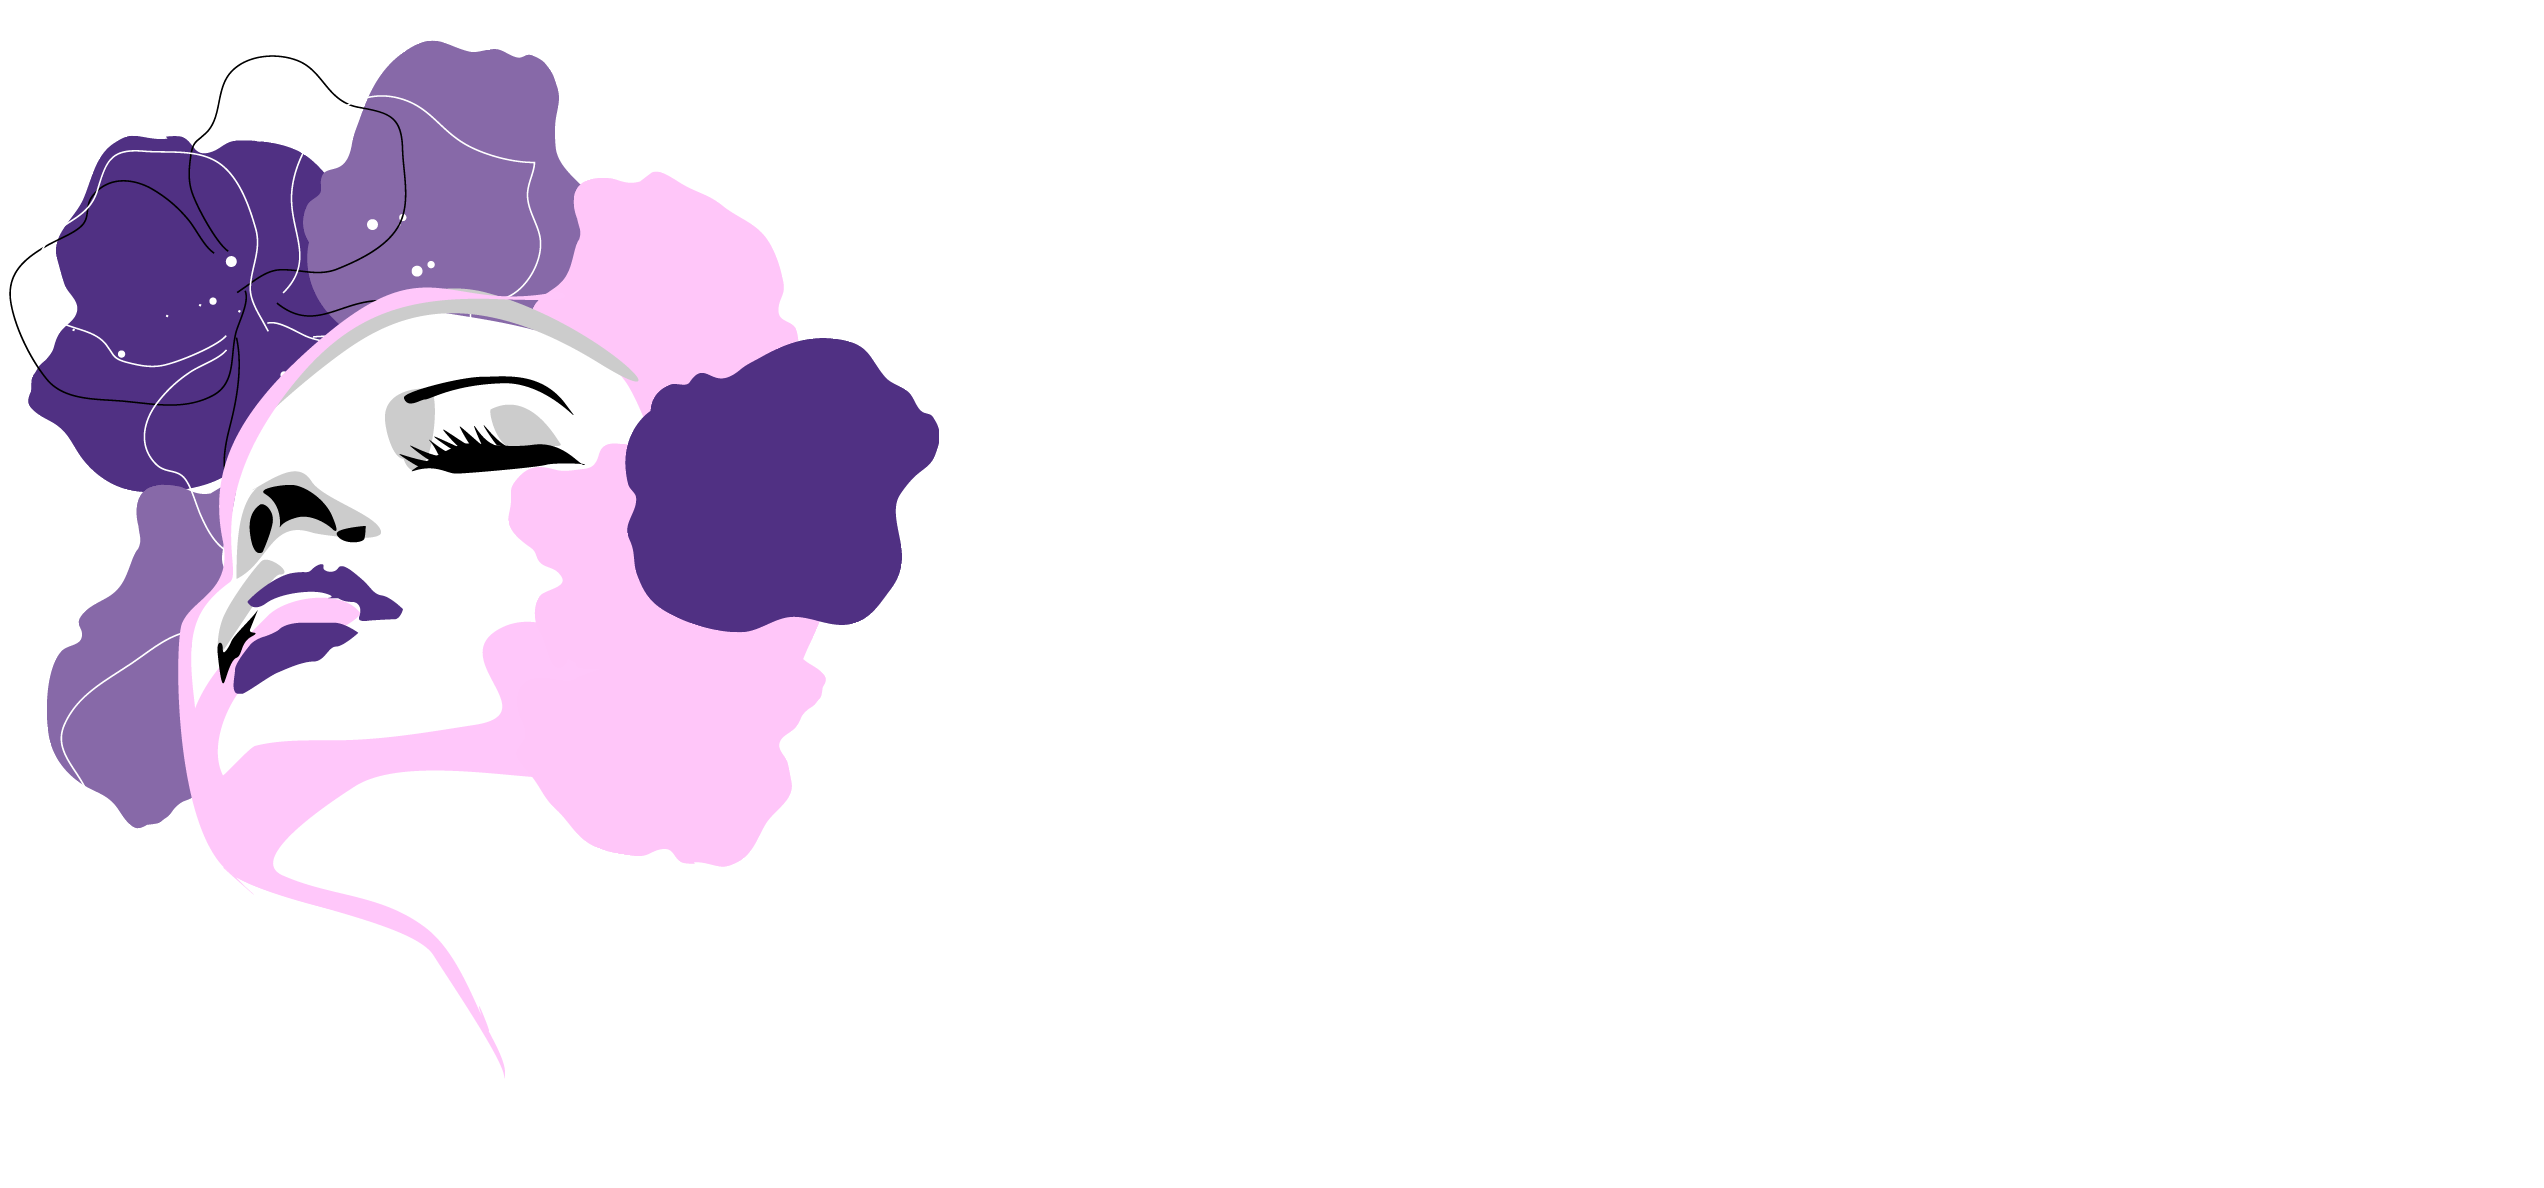 Plant clipart aesthetic. The medical clinic winchester